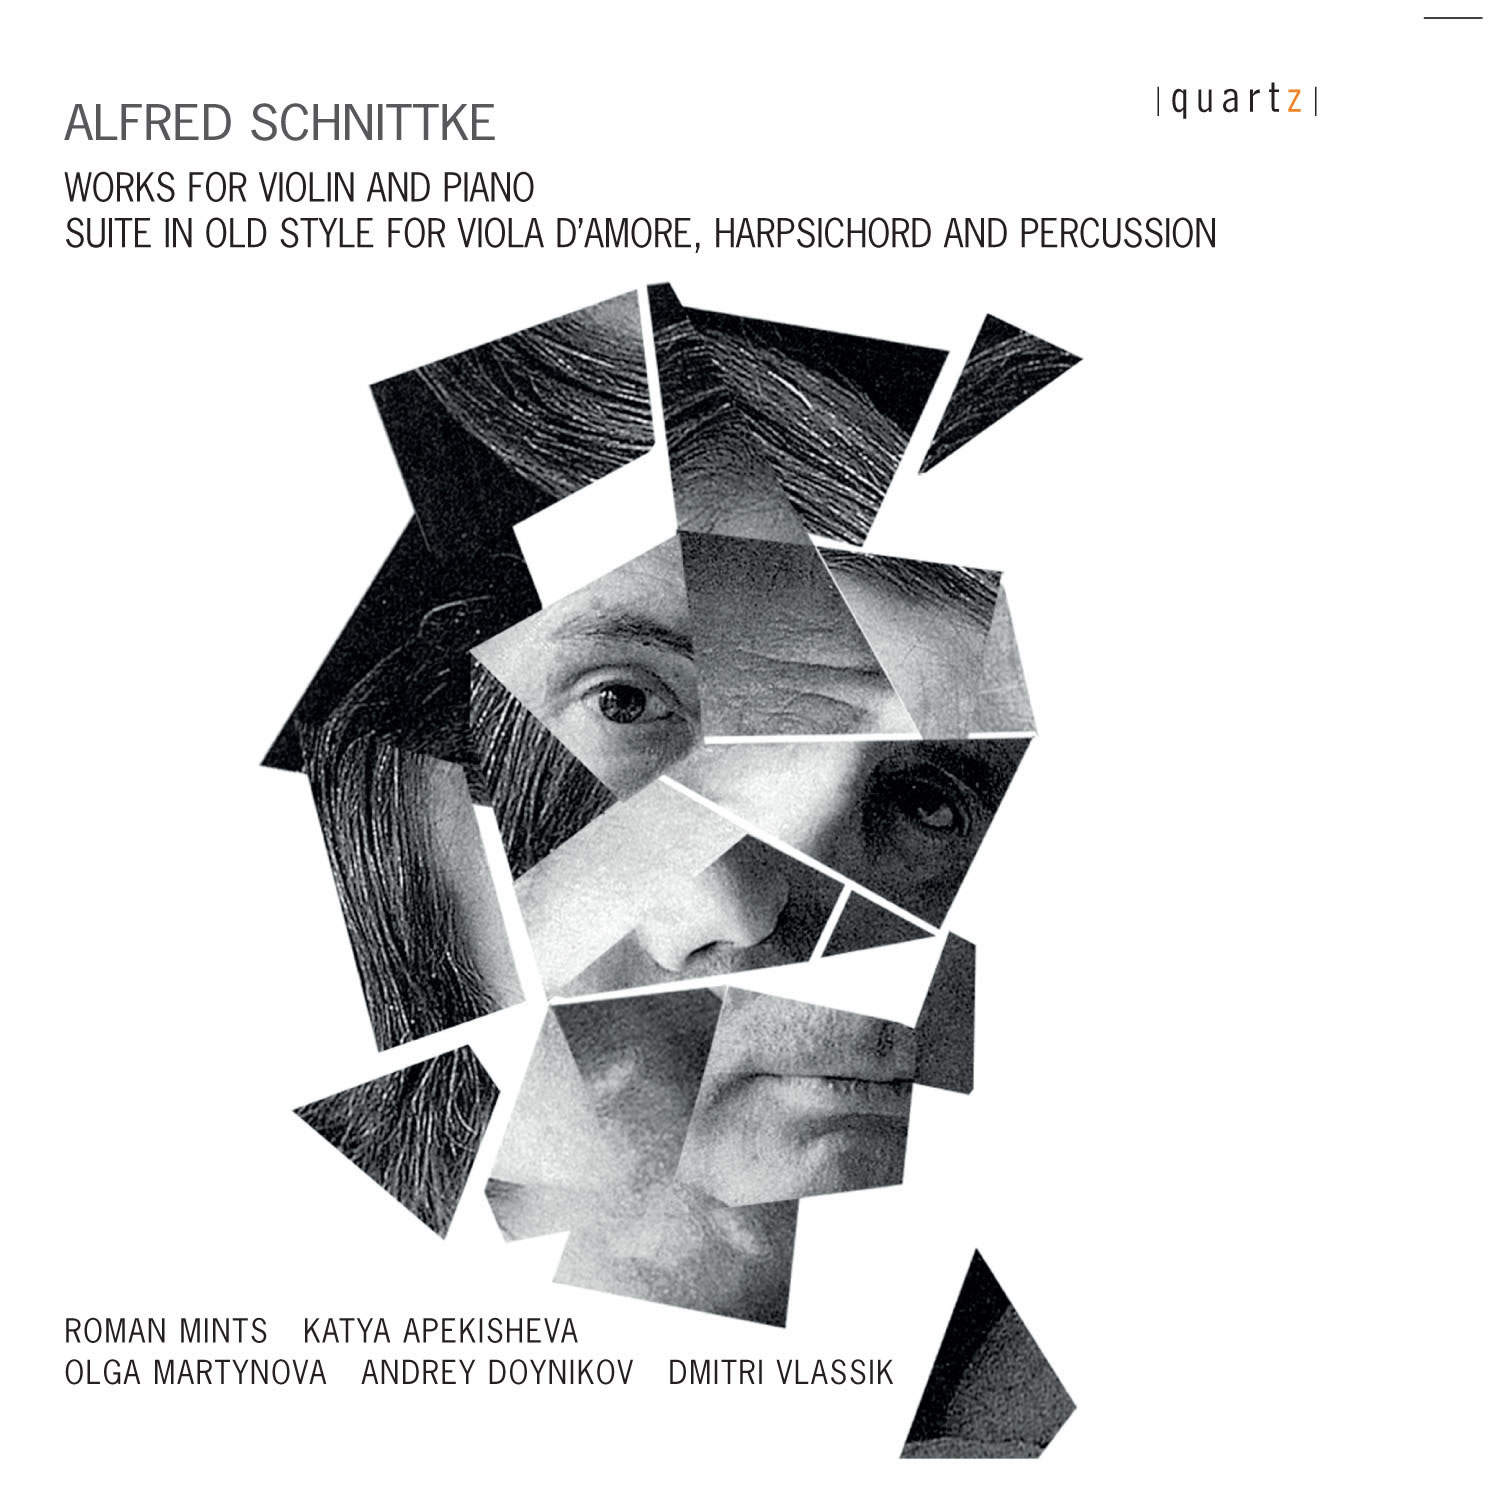 Alfred schnittke works for violin and piano roman mints roman mints violin katya apekisheva piano pooptronica